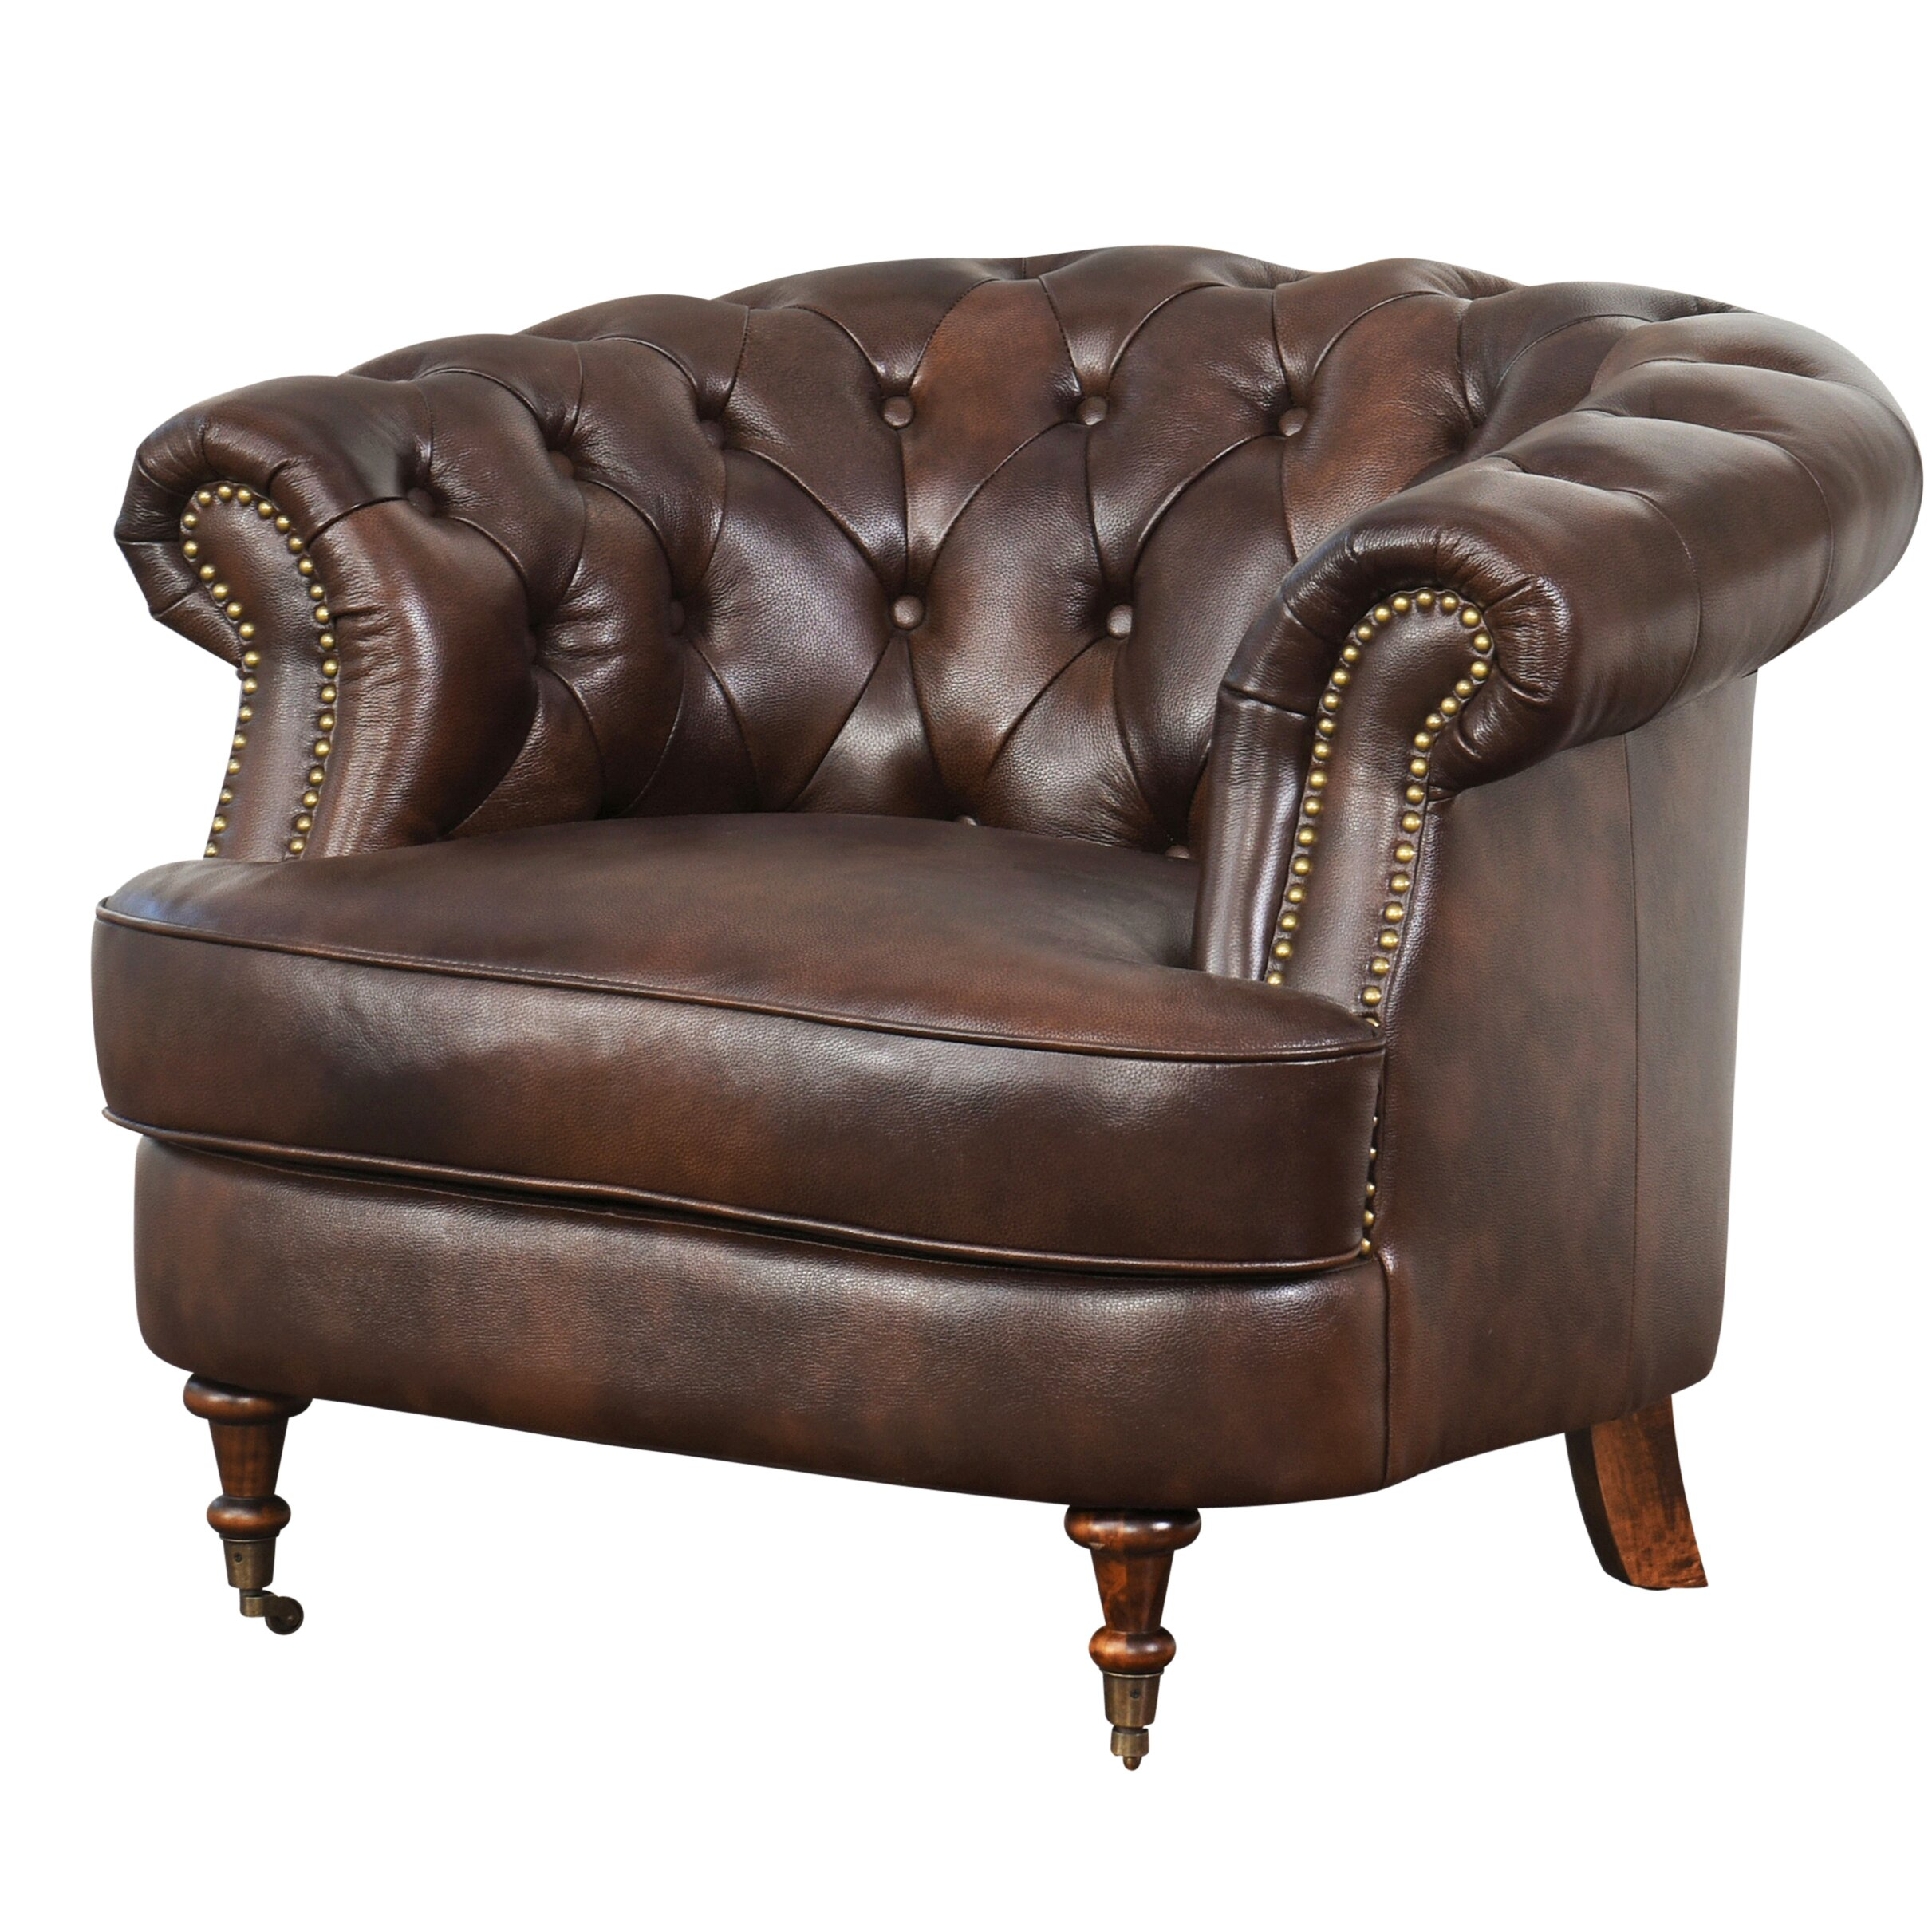 darby home co michele tufted top grain leather arm chair. Black Bedroom Furniture Sets. Home Design Ideas